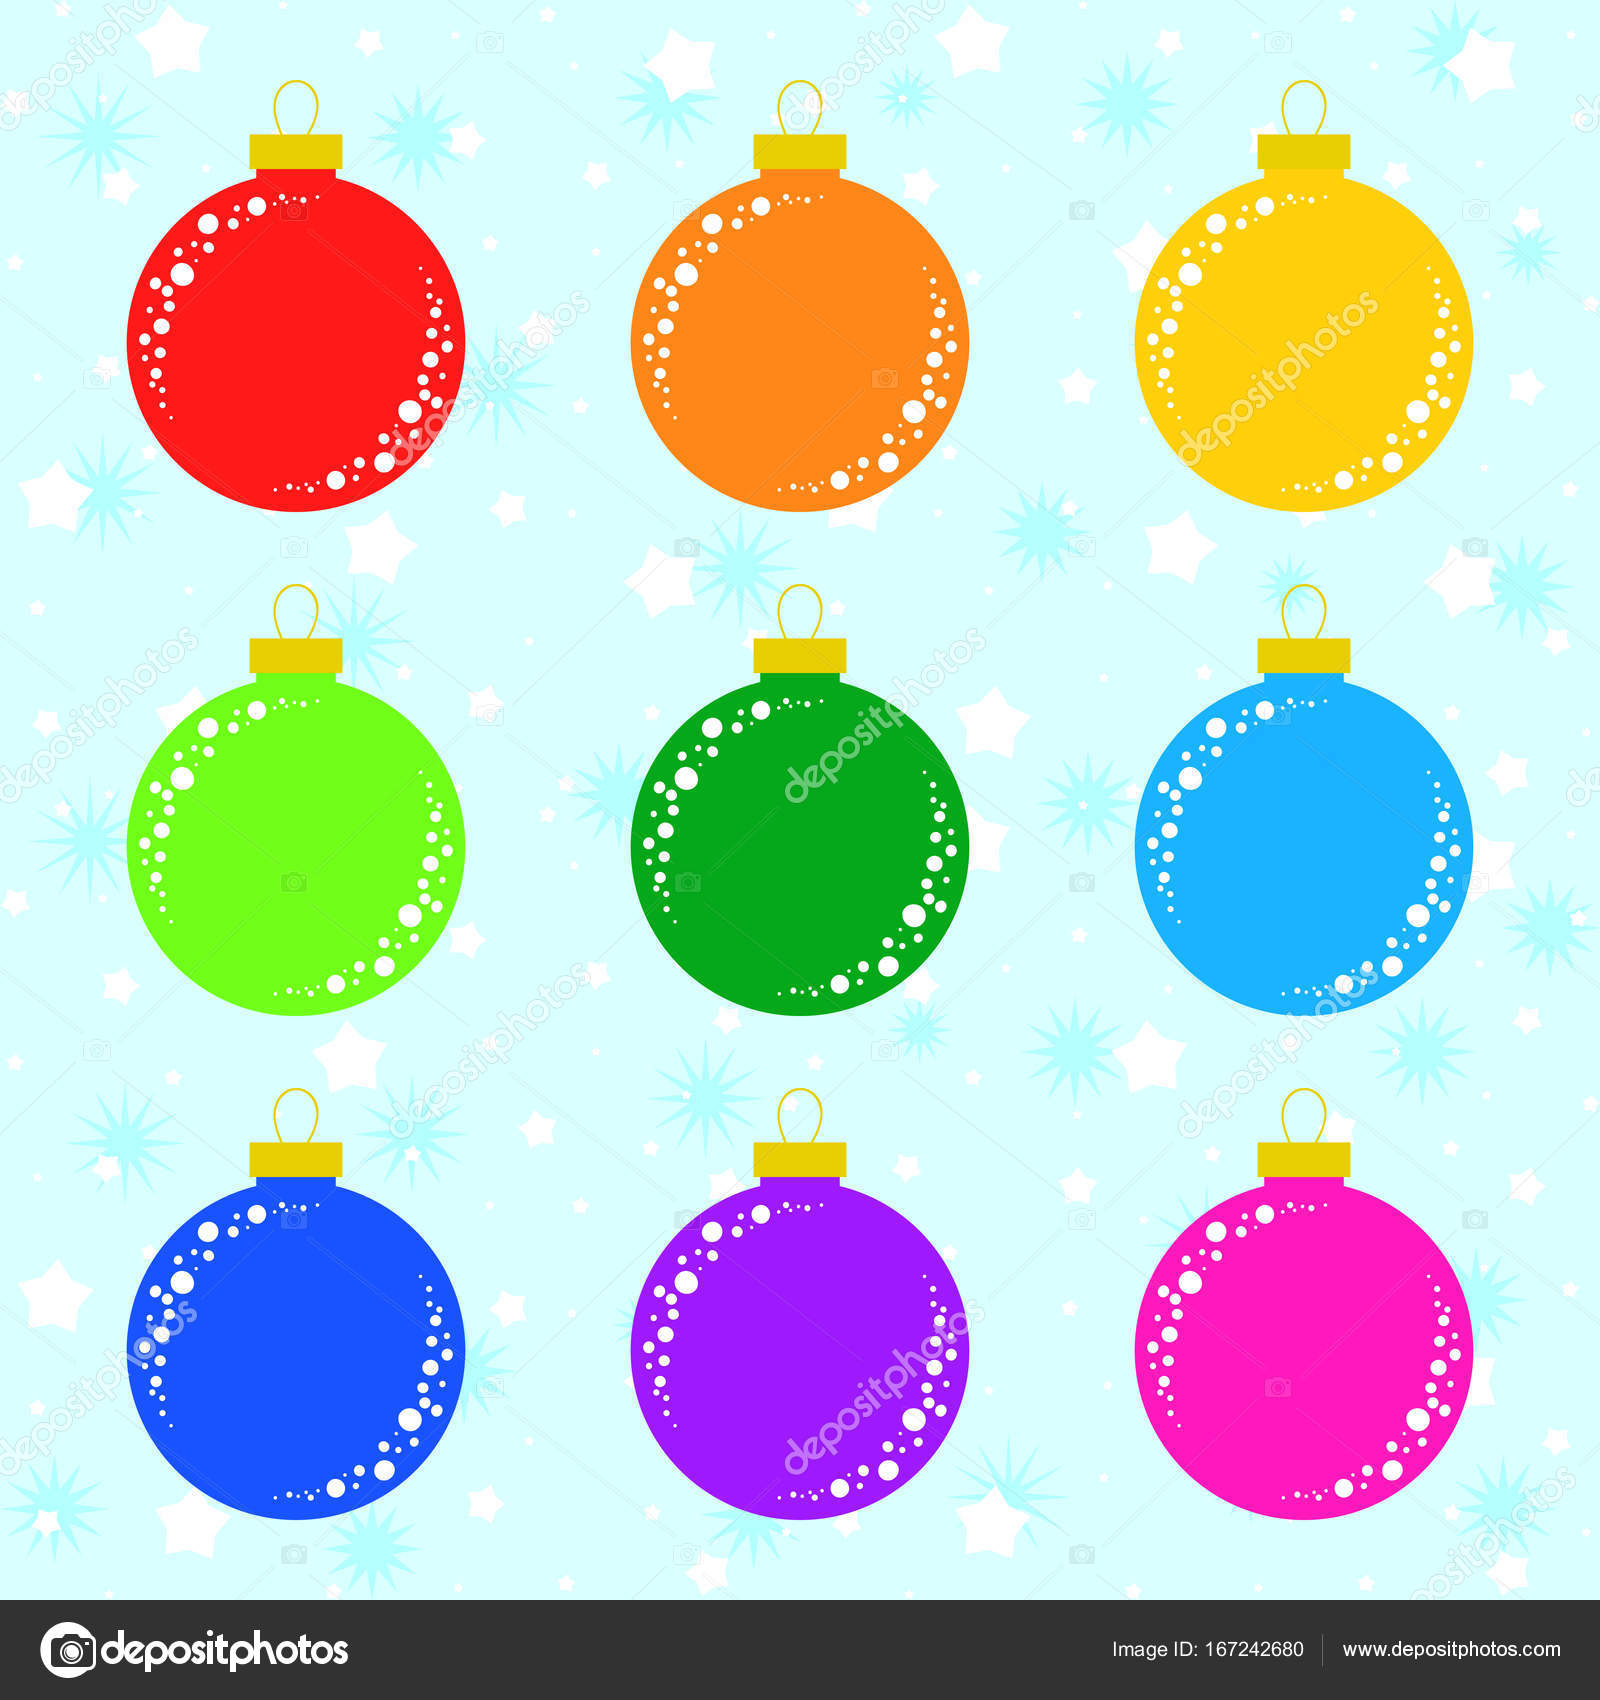 set of flat colored isolated christmas tree toys decoration balls are red orange